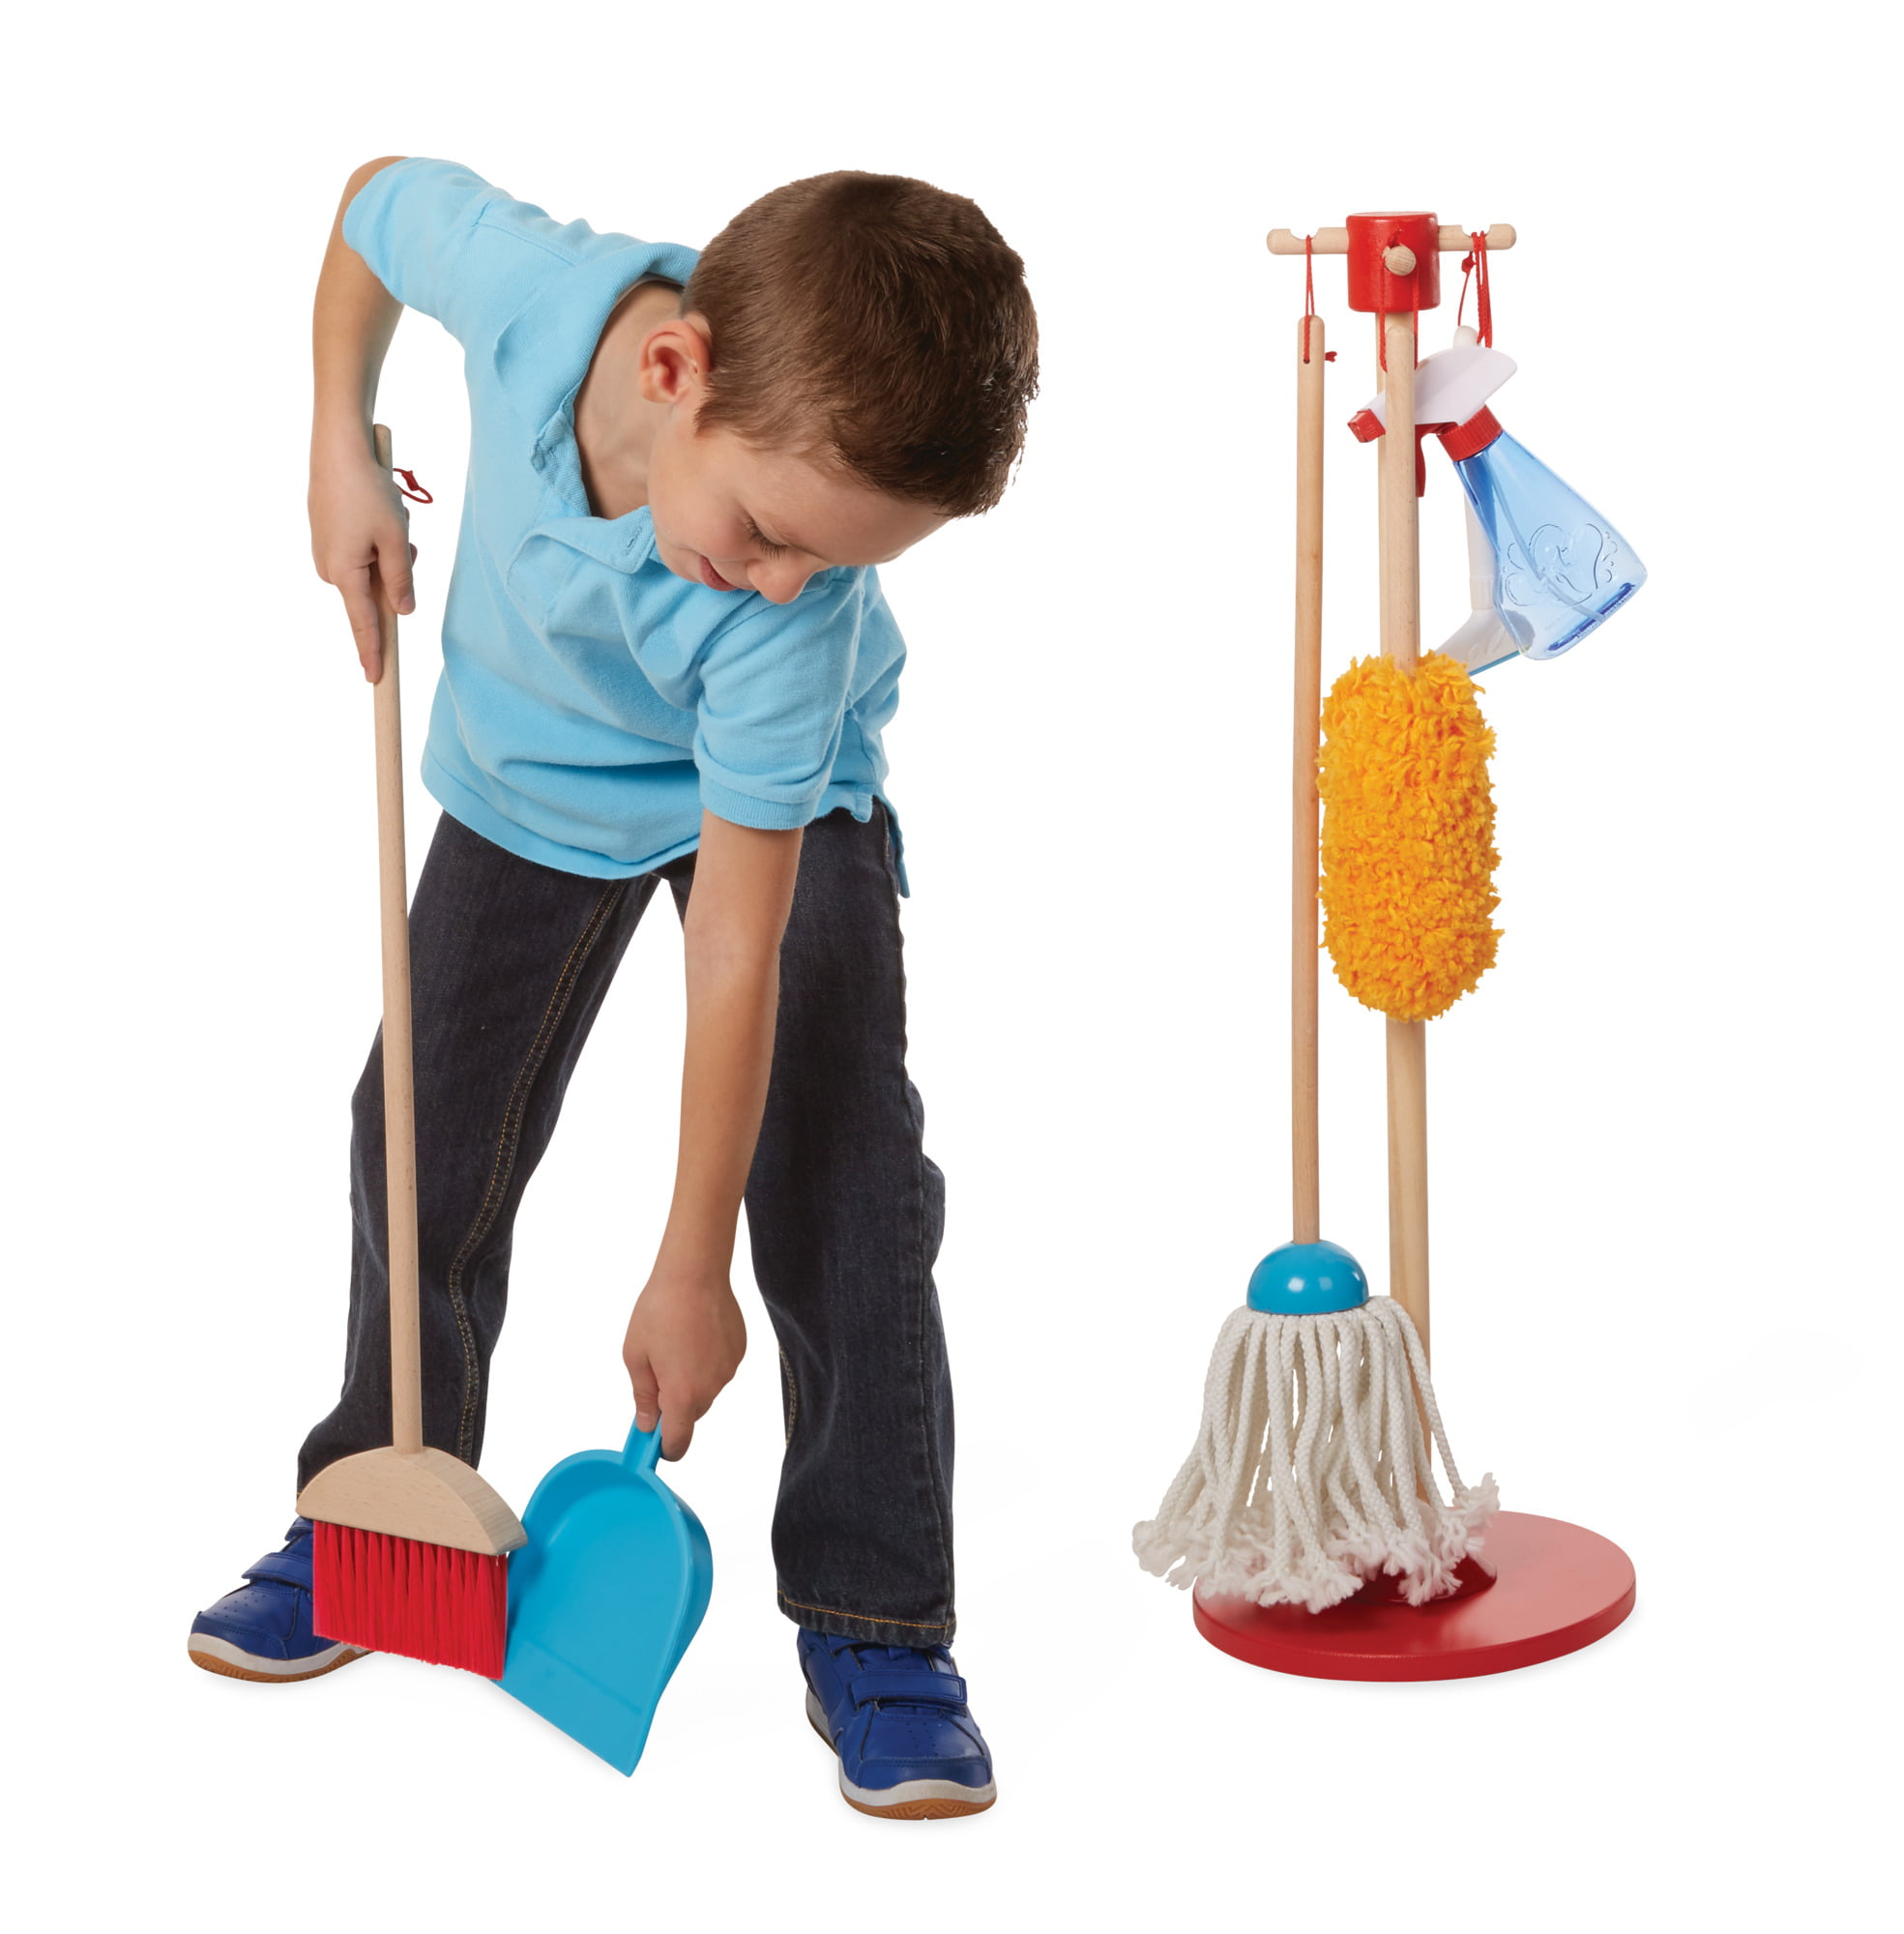 Melissa and Doug Cleaning 6 Piece Kids Children/'s Play Set